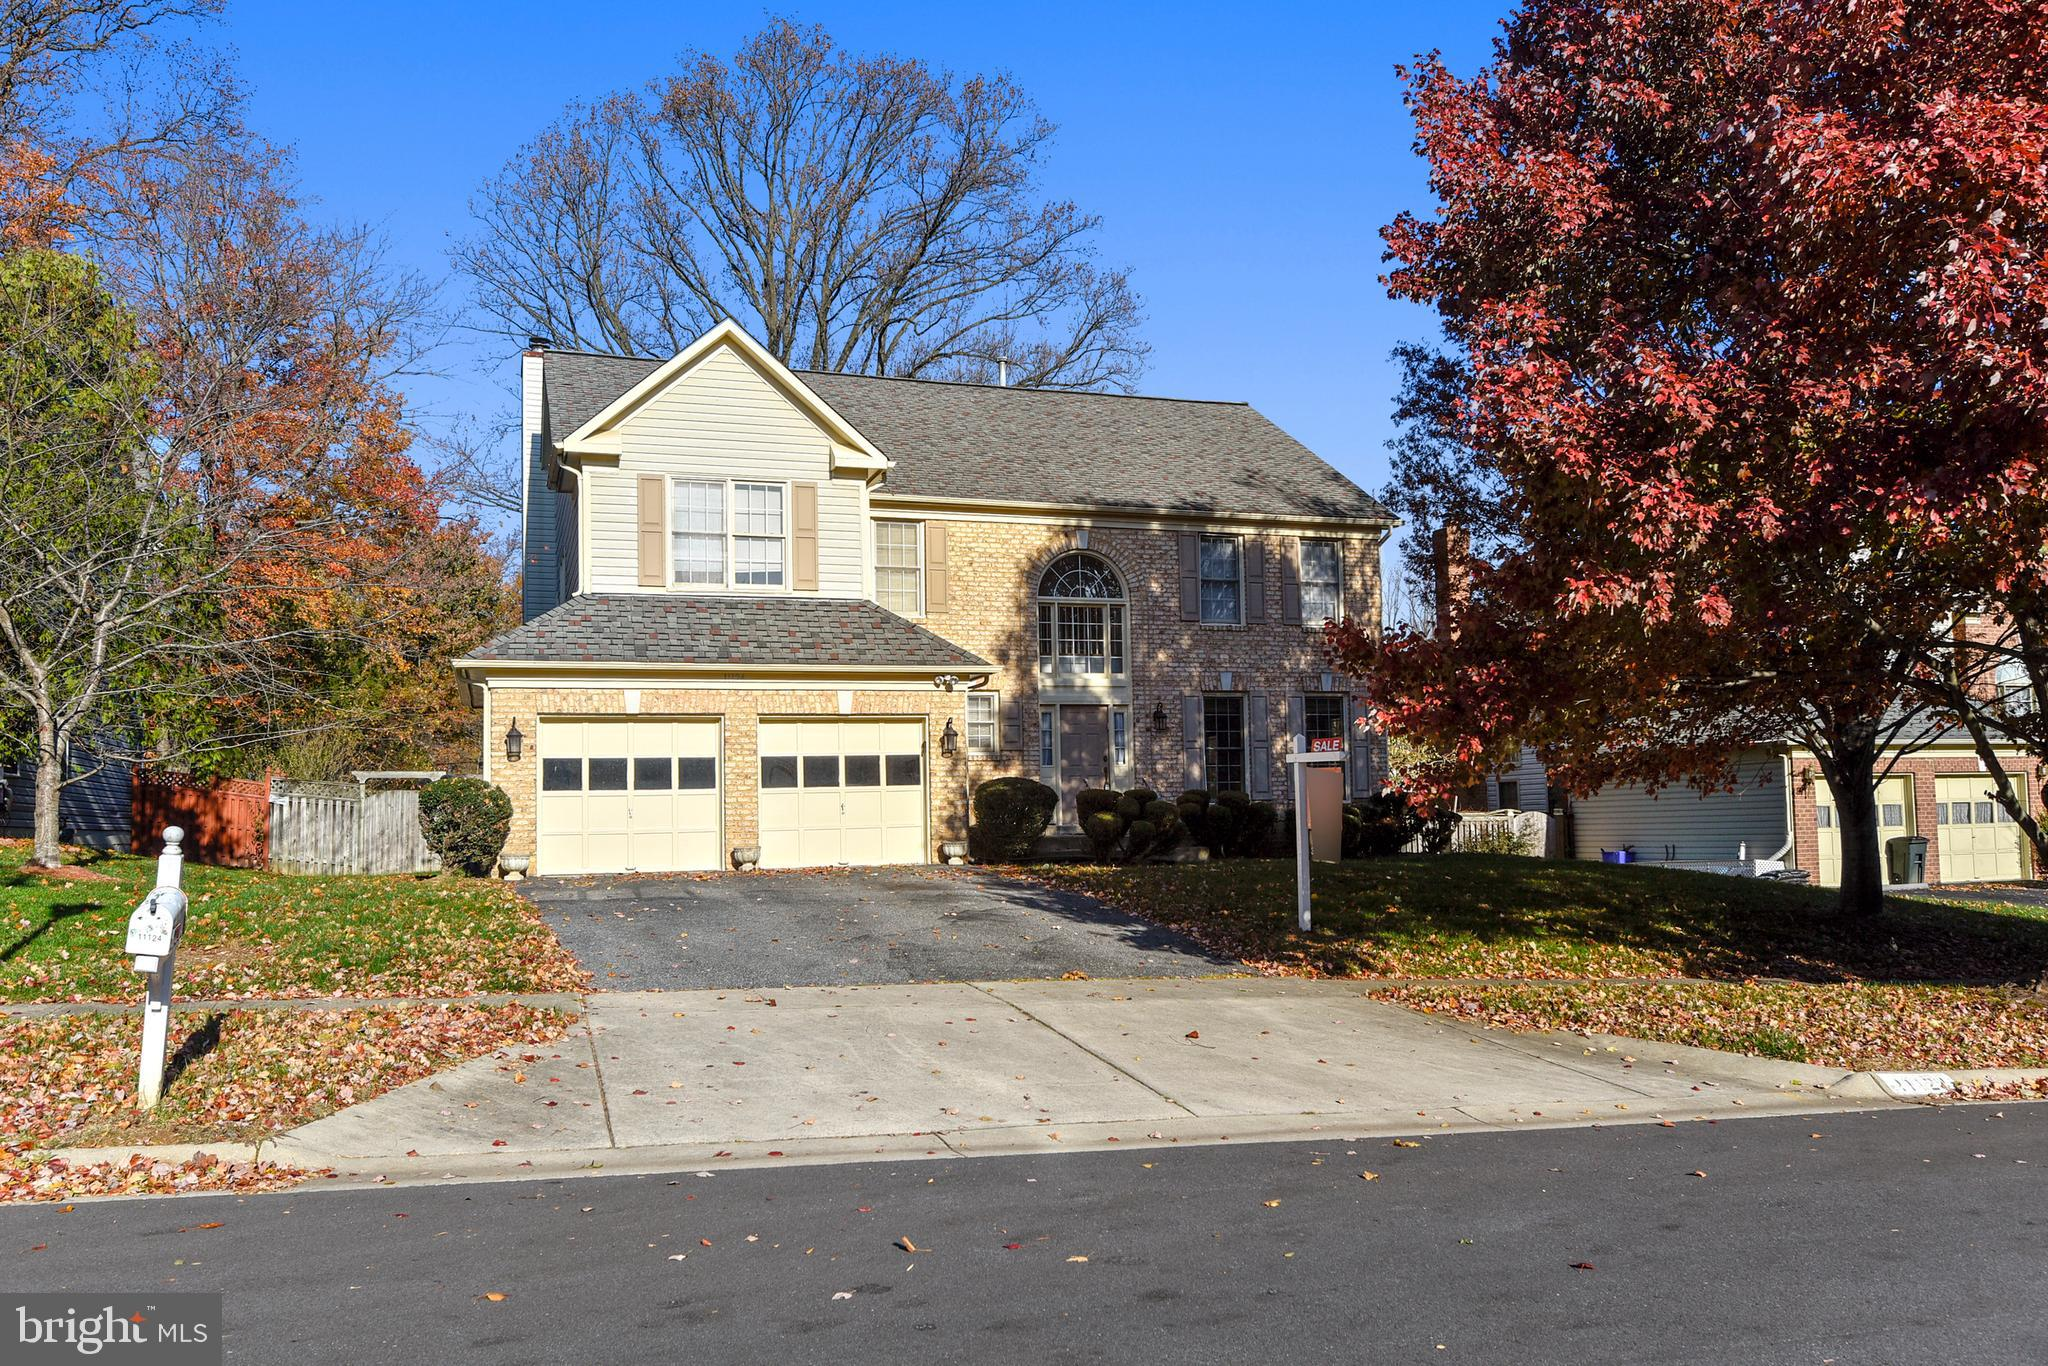 11124 LUTTRELL LANE, SILVER SPRING, MD 20902